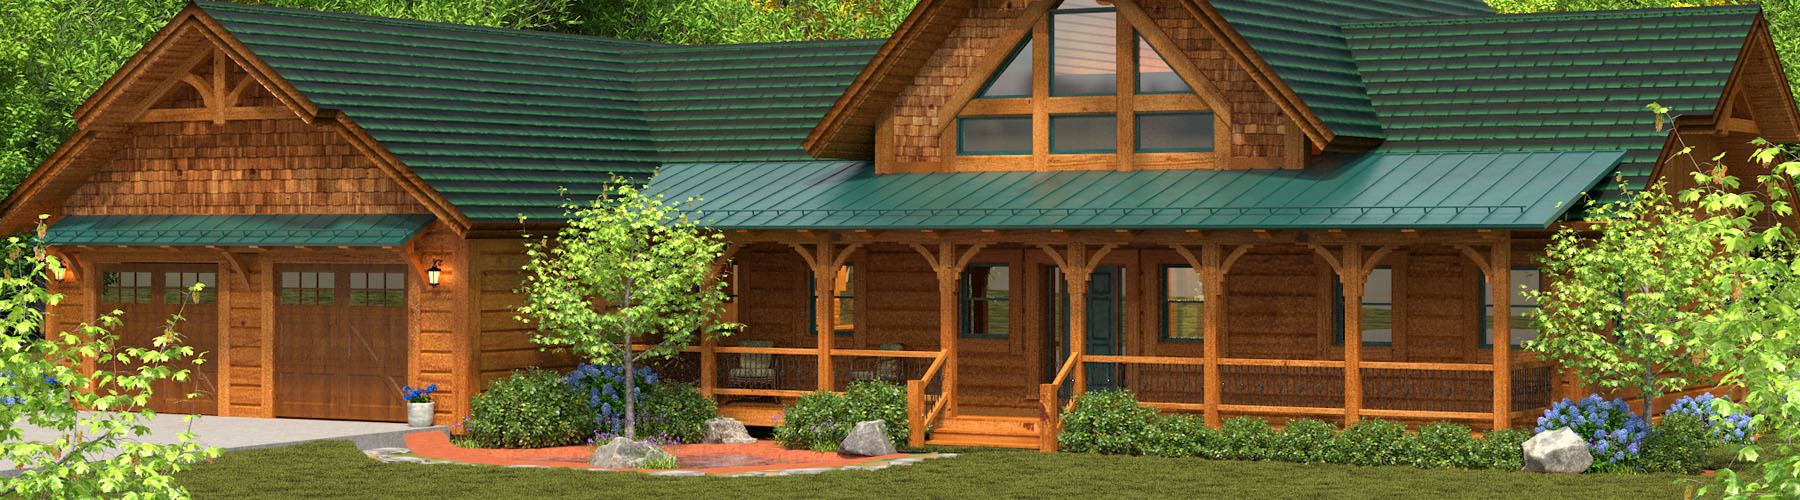 Summer Dream 1821AL-UCT Lofted Ultra Custom Timber